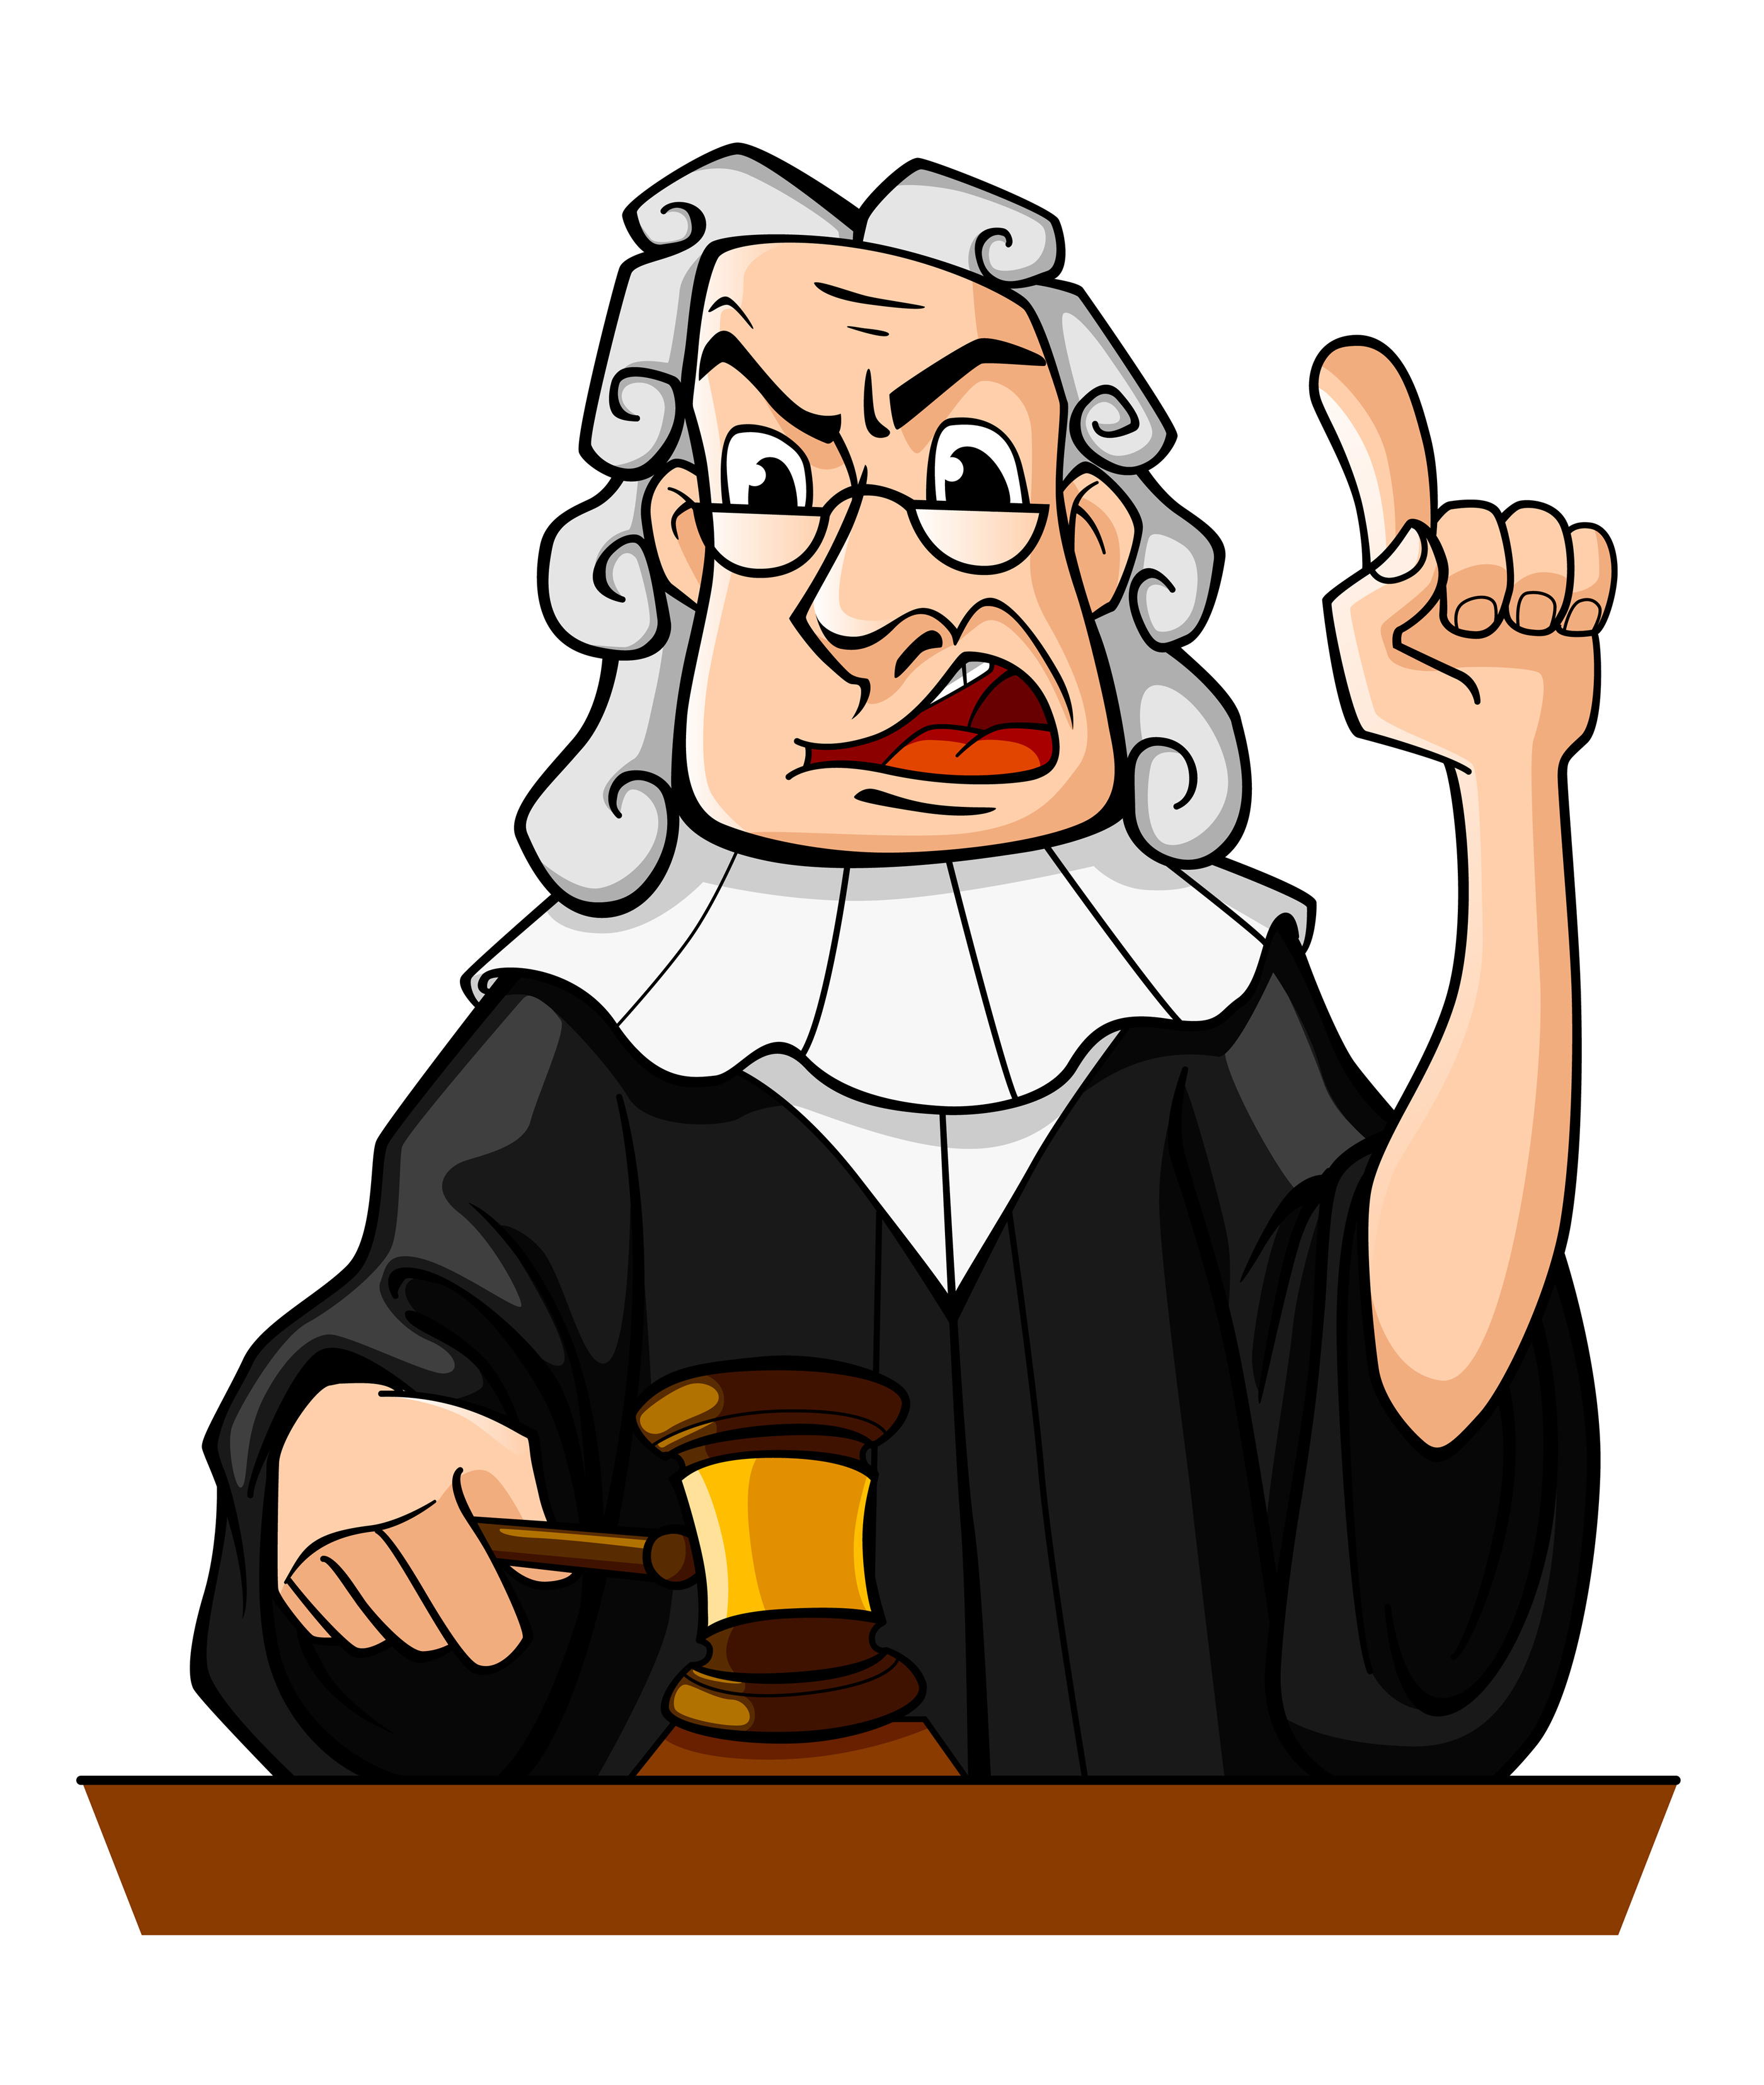 Court of justice clipart - Clipground